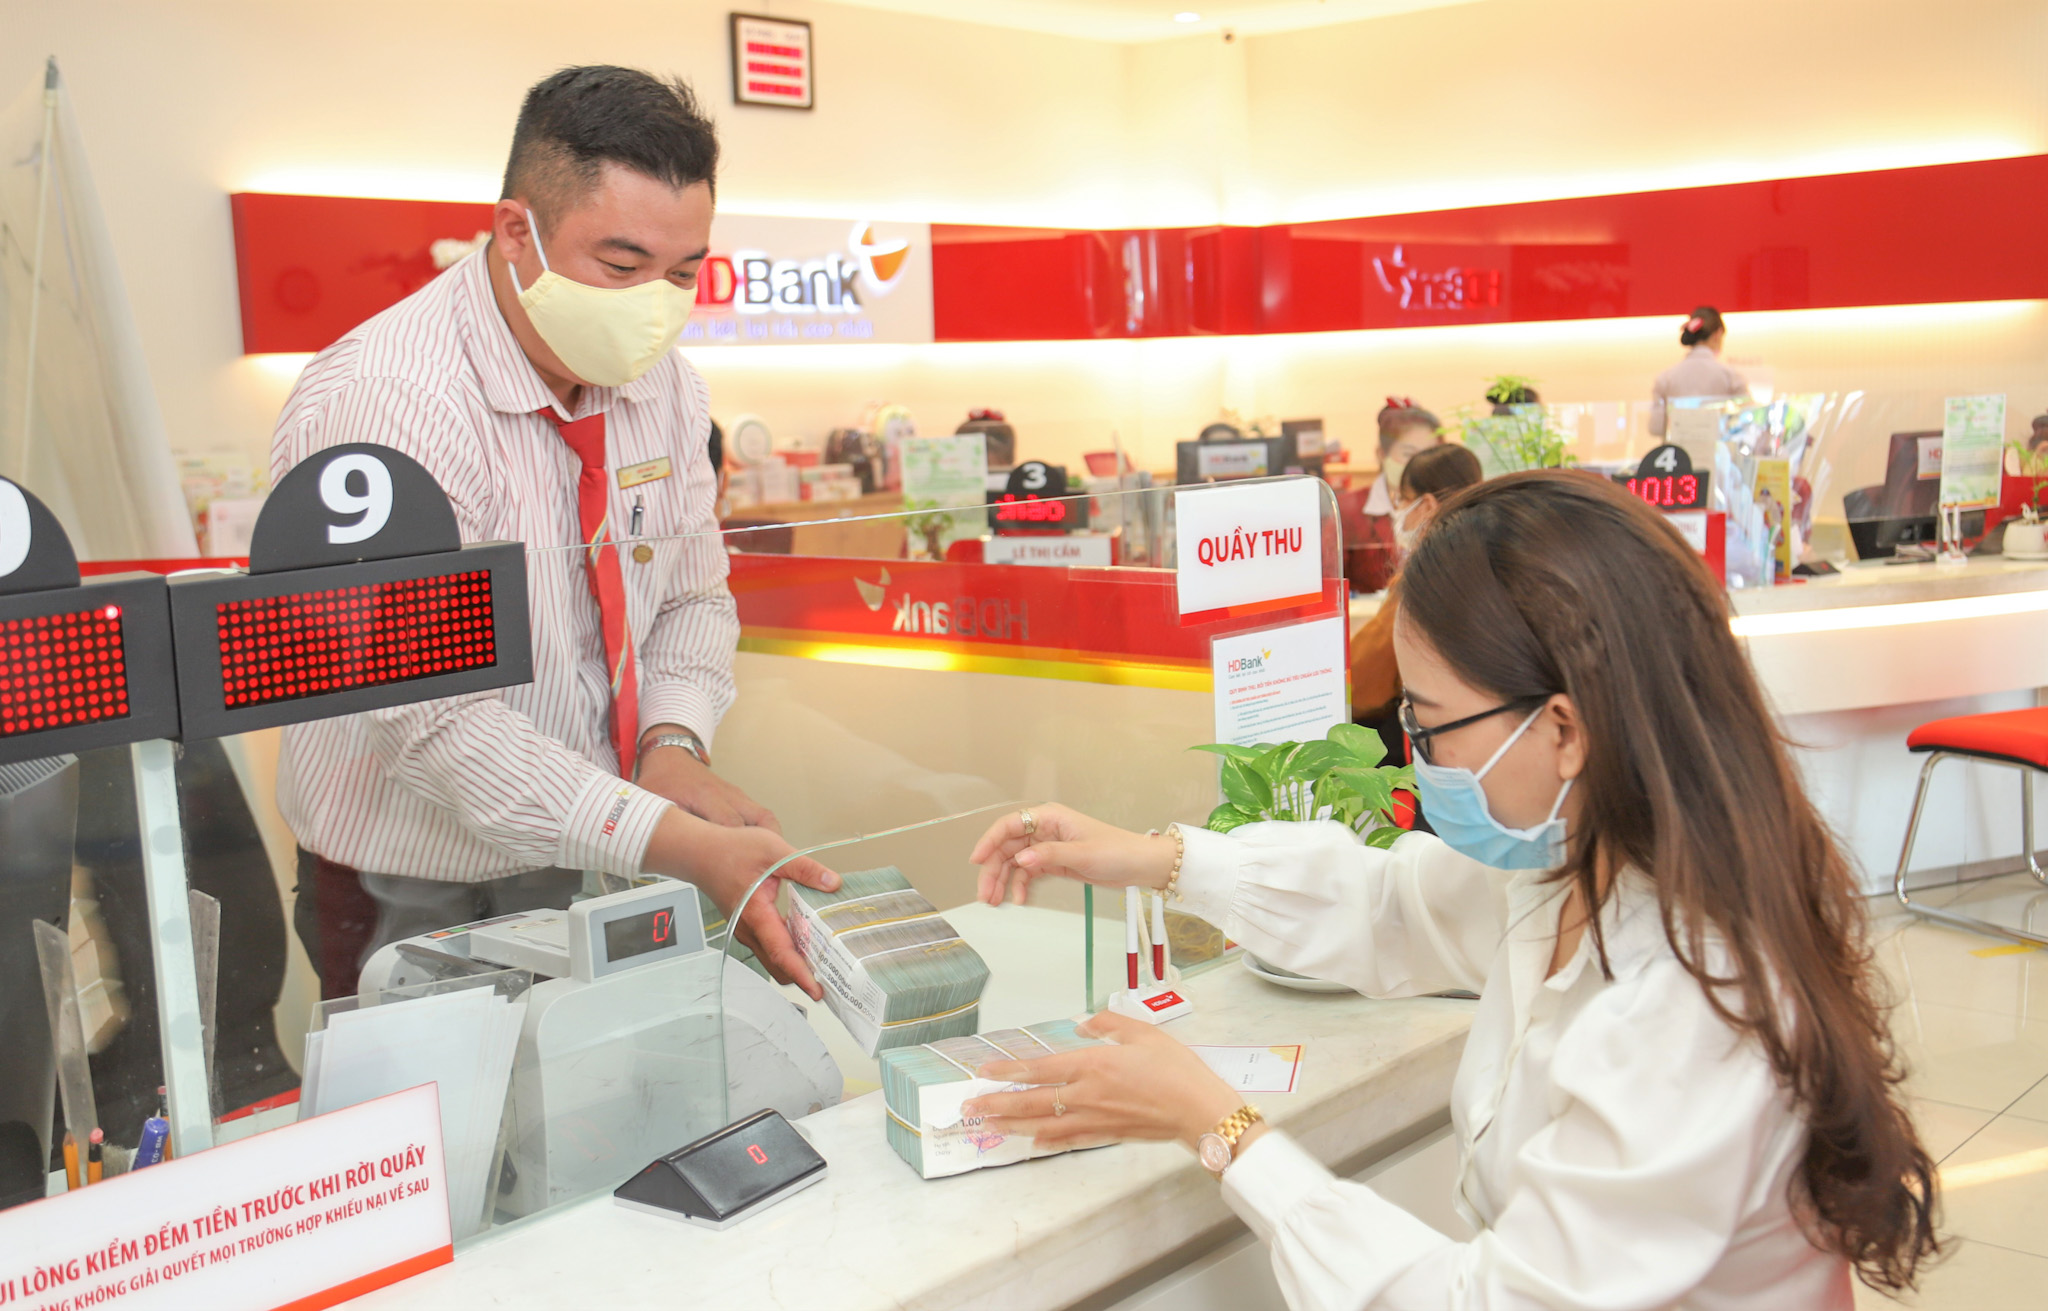 HDBank Achieves Gross Income Exceeding VND 4,190 Billion